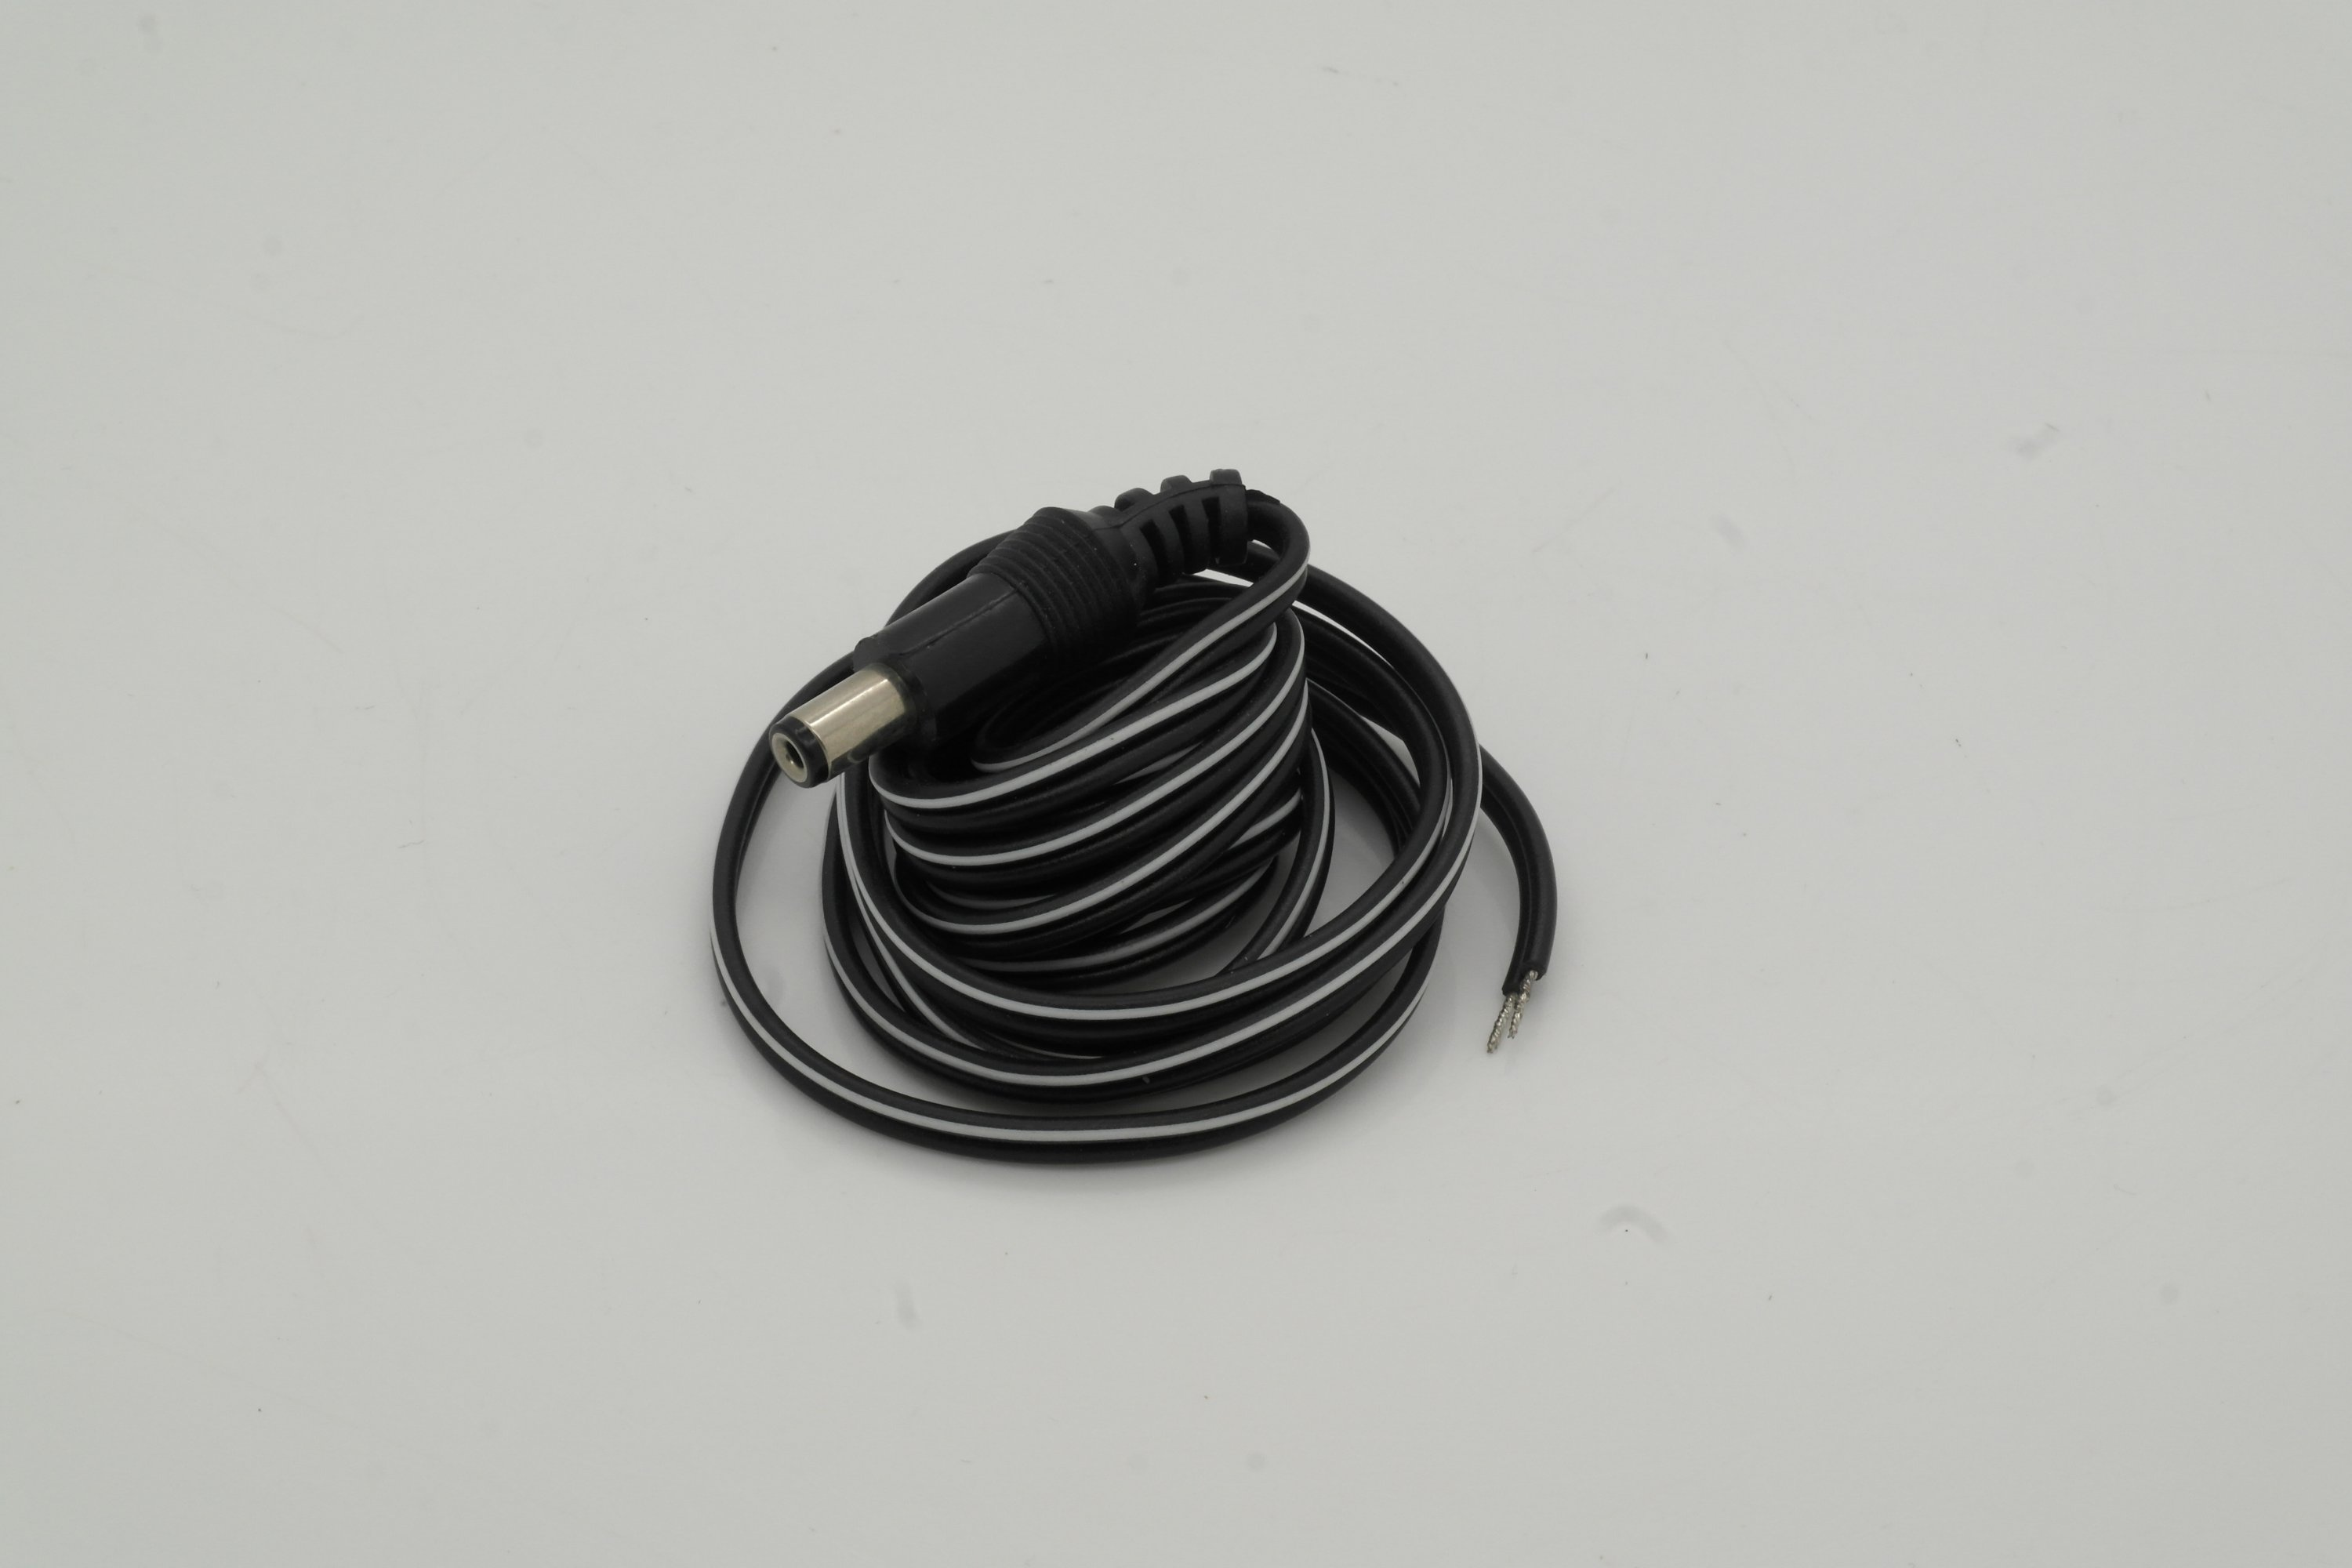 Icom OPC-012 DC Power Lead